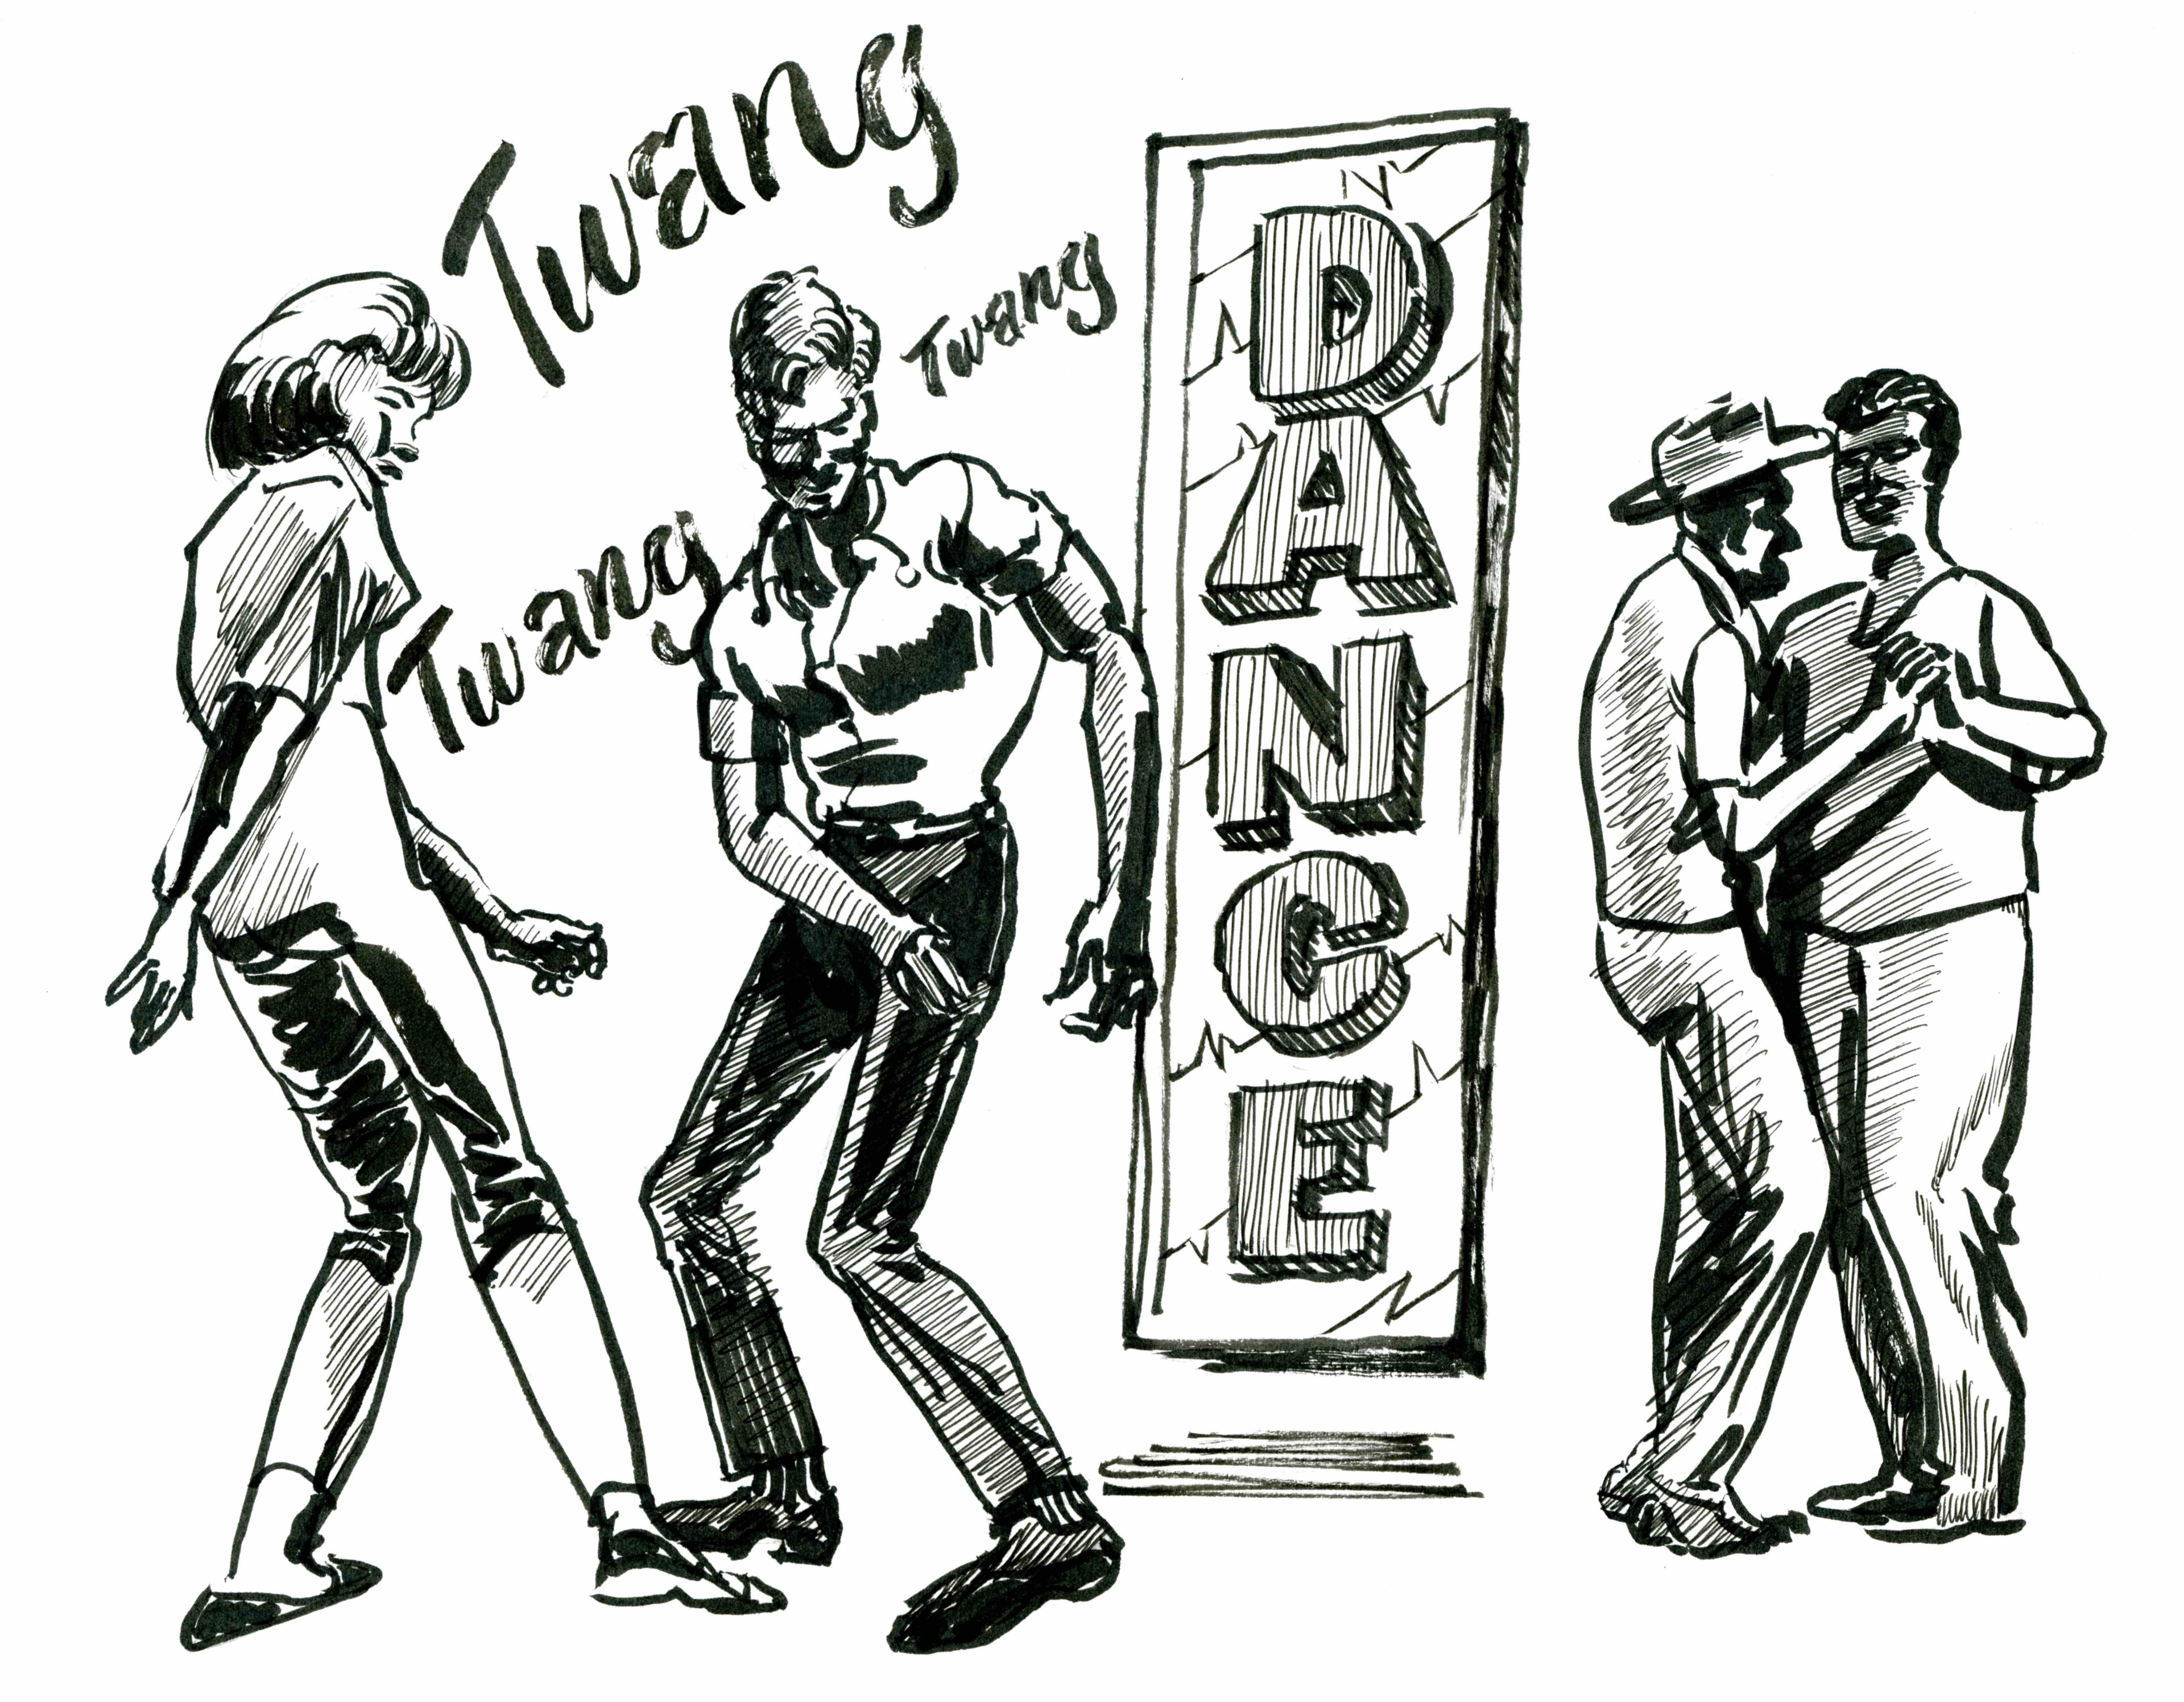 Use photographic reference. I used photos as models to draw popular dance moves from the 60's